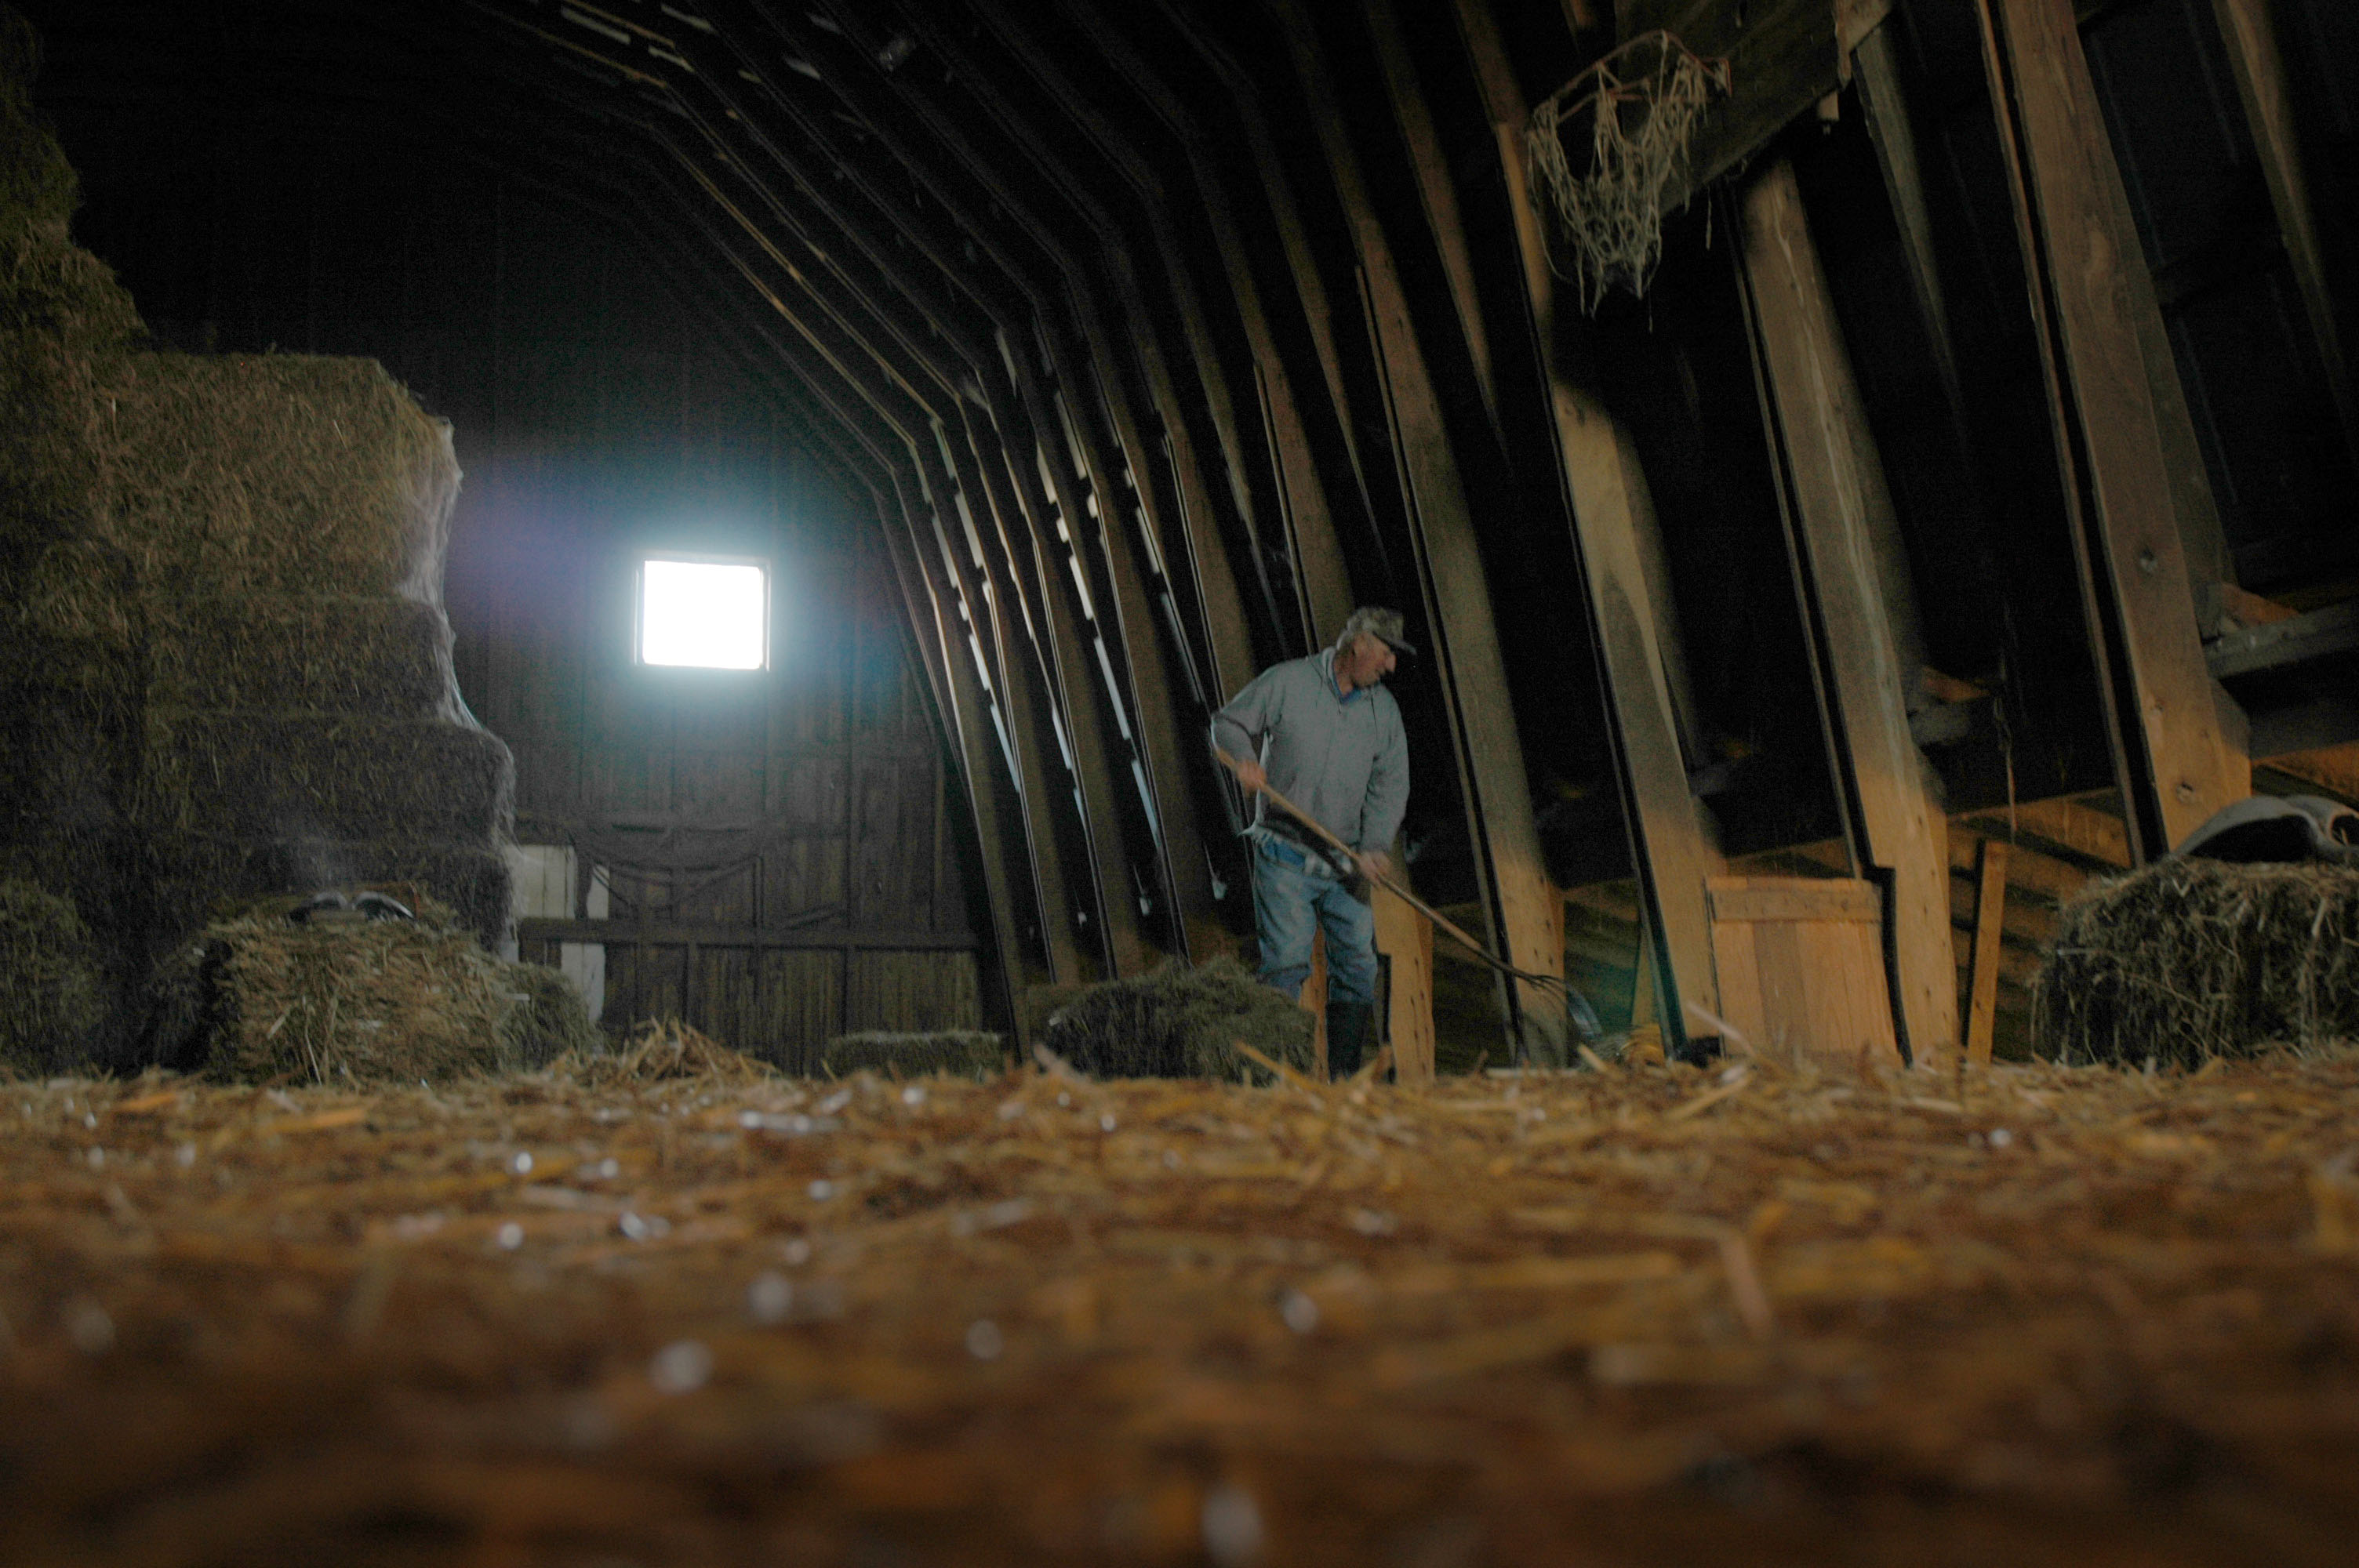 Roy In Barn